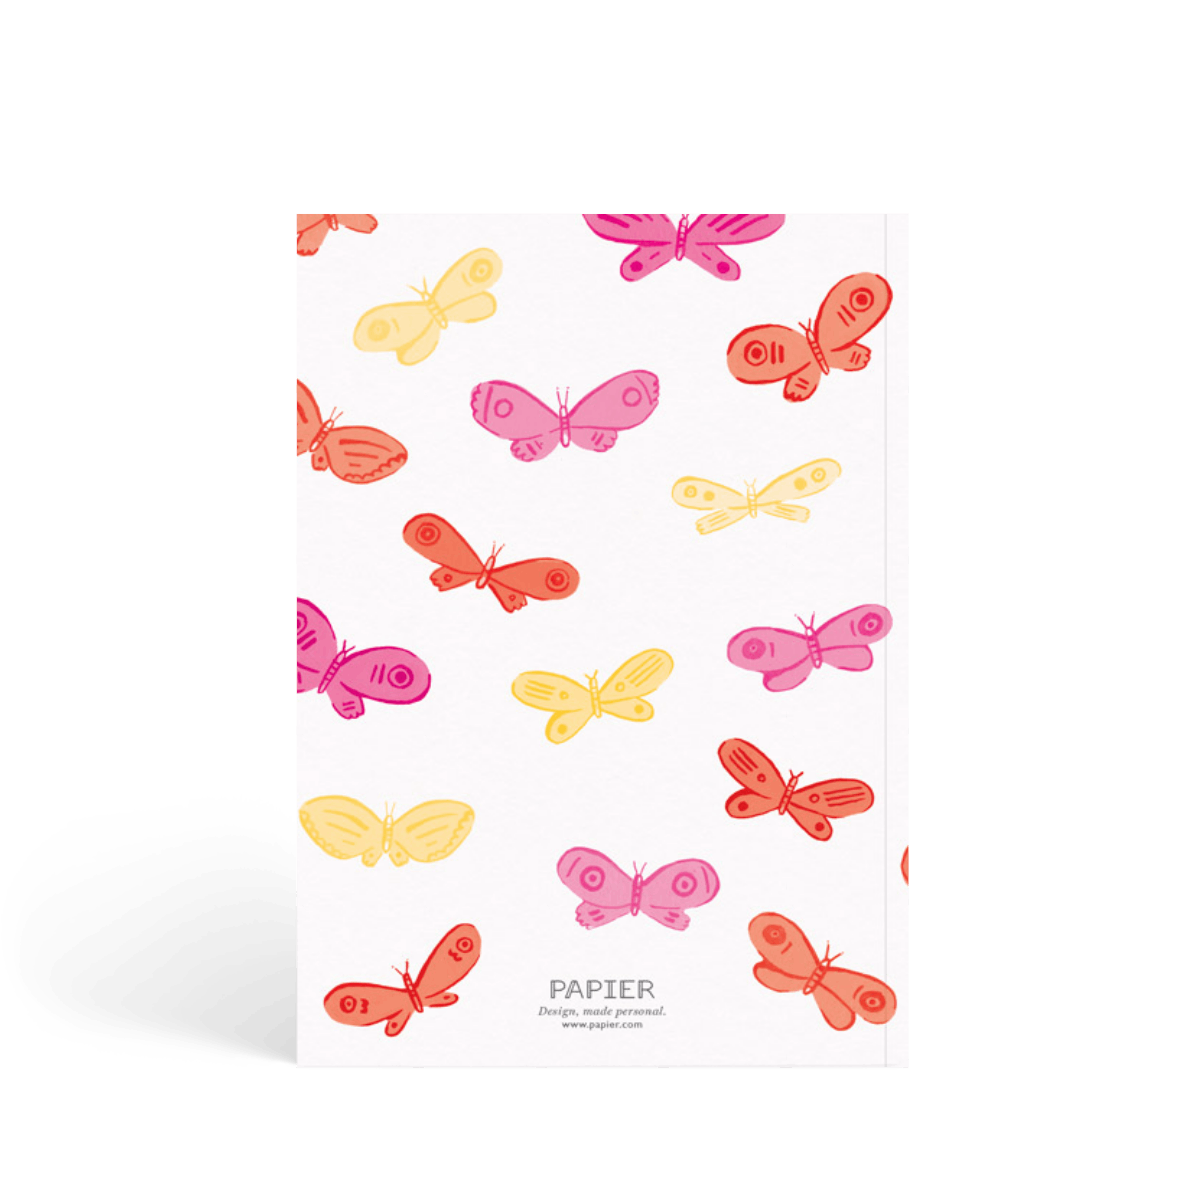 Https%3a%2f%2fwww.papier.com%2fproduct image%2f13758%2f5%2fpink butterflies 3535 back 1479220885.png?ixlib=rb 1.1